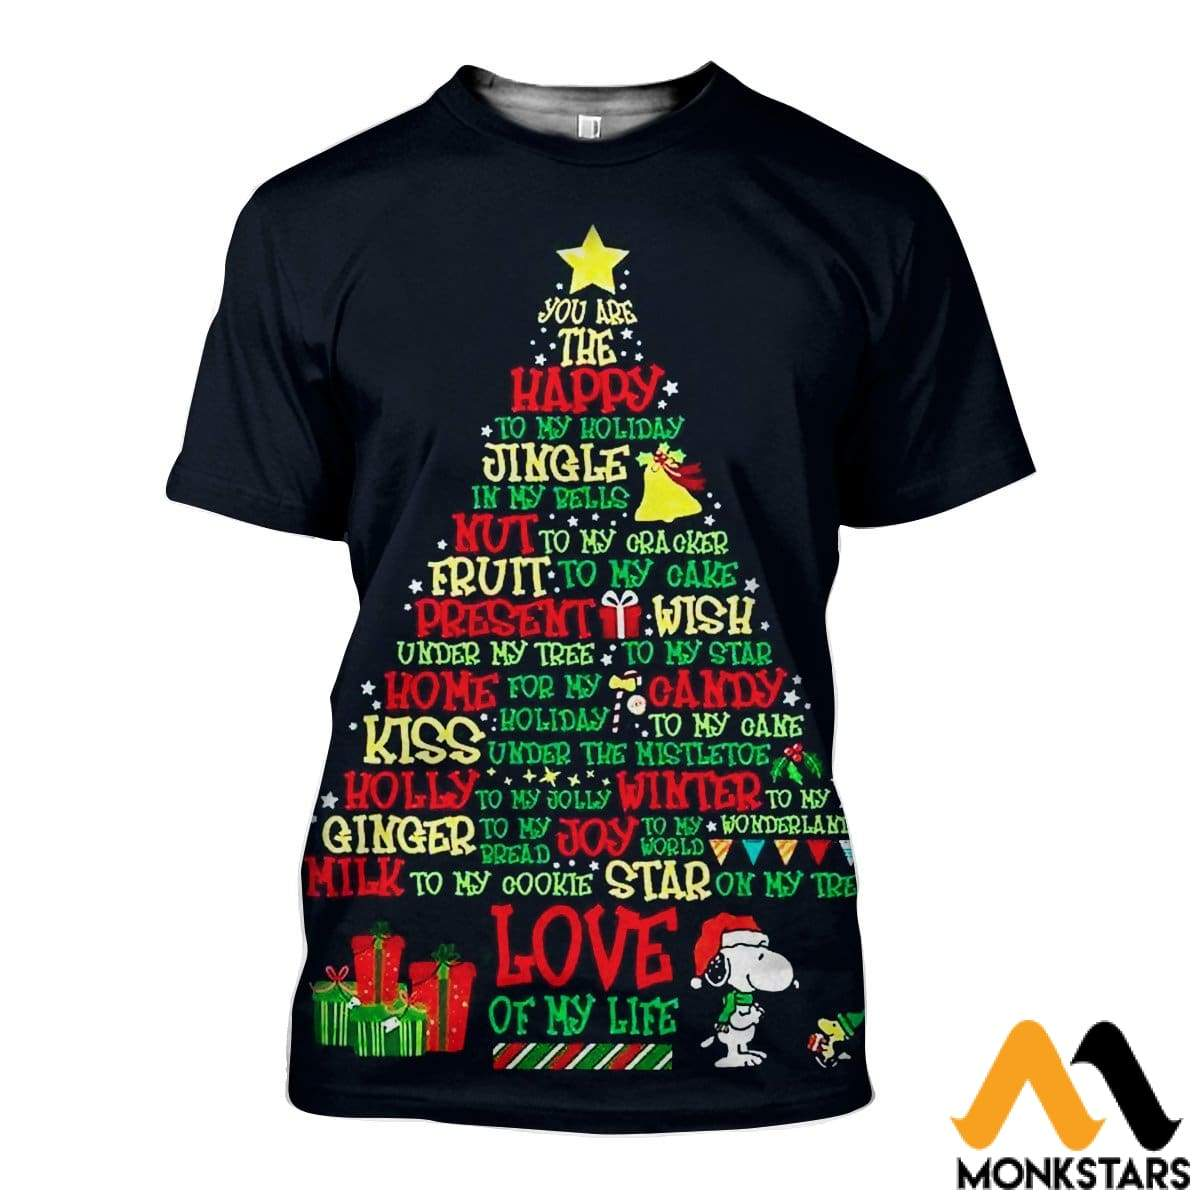 8d0da2c3f726 3D All Over Printed Christmas Shirts And Shorts T-Shirt   Xs Clothes